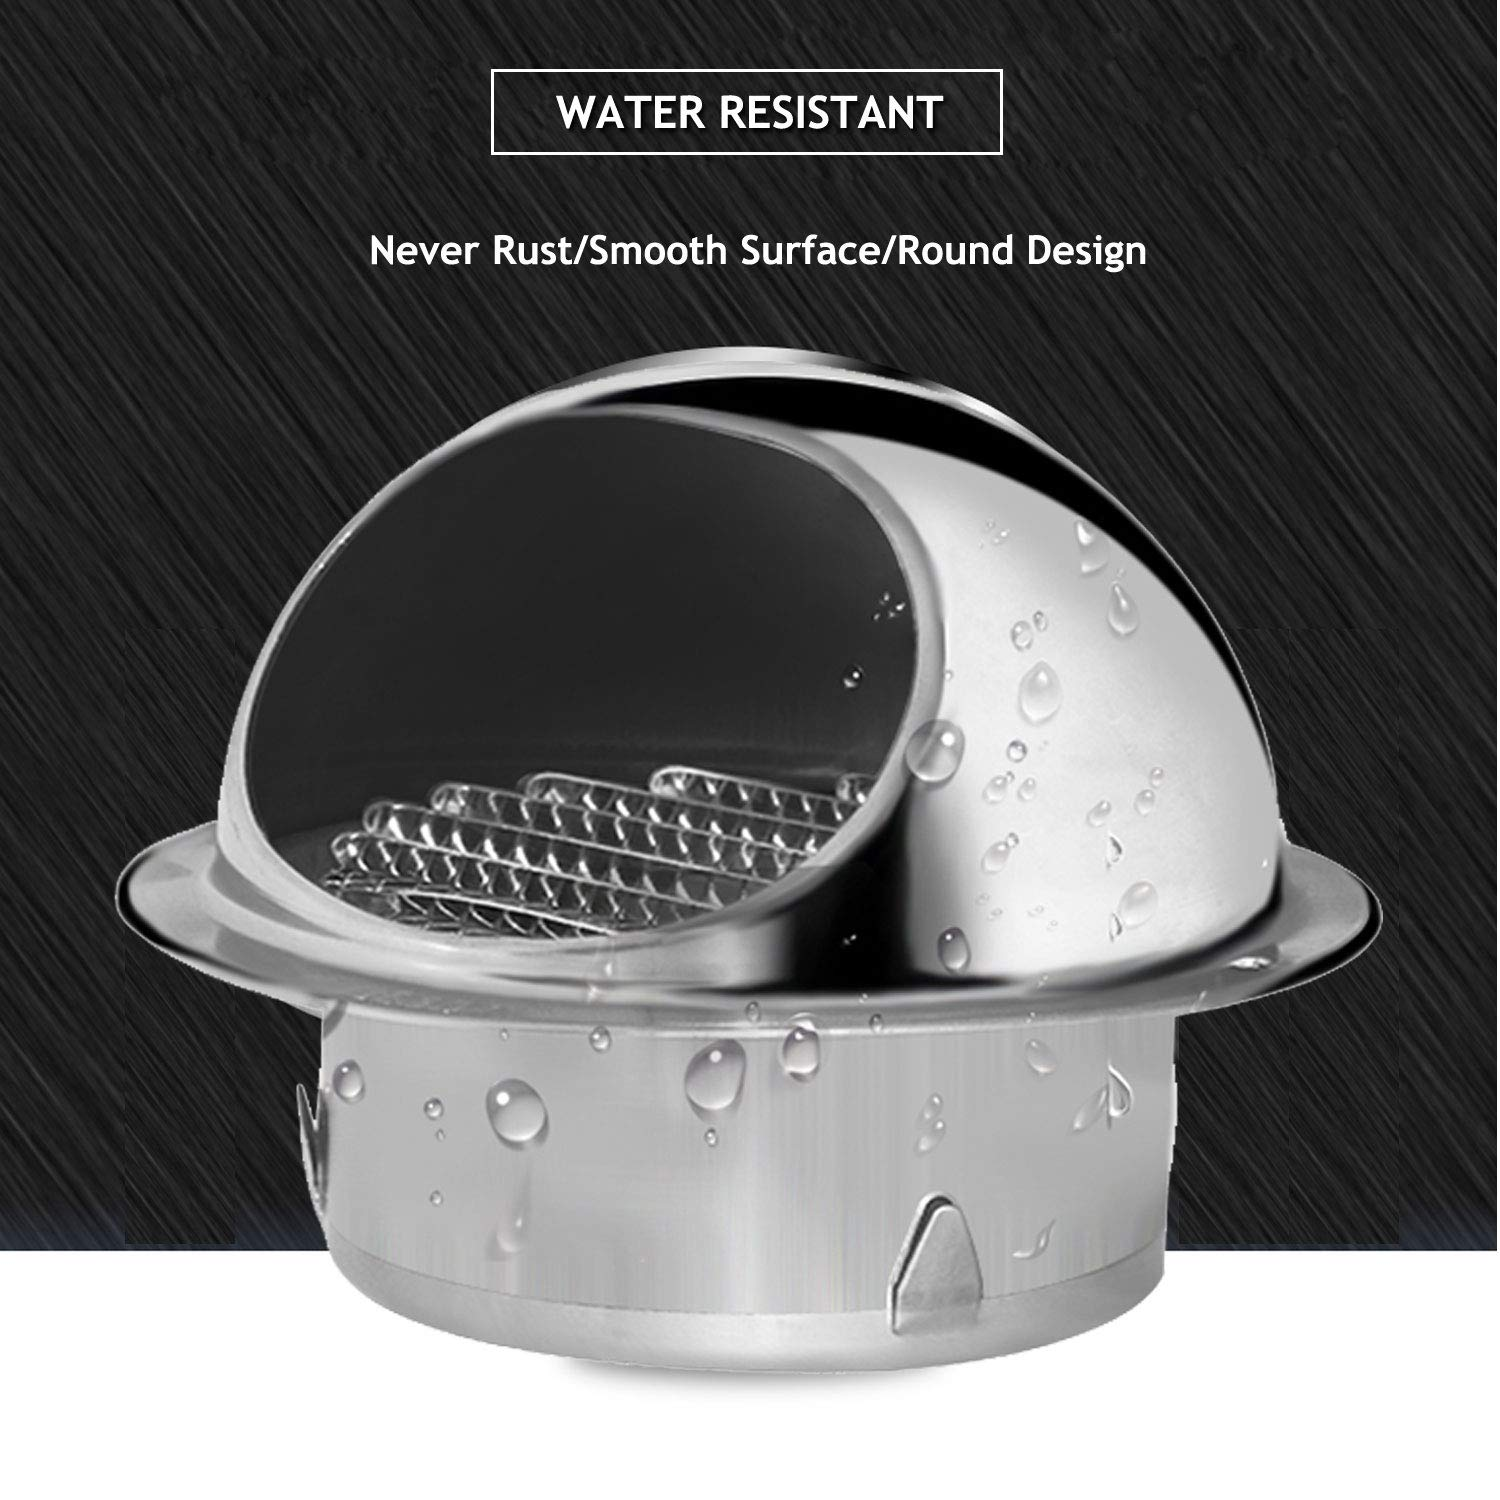 PartsExtra 6inch 304 Stainless Steel Air Vent Sphere Ventilation Grille Ducting External Extractor Hood Wall Mount Exhaust Covers Vents Outlet